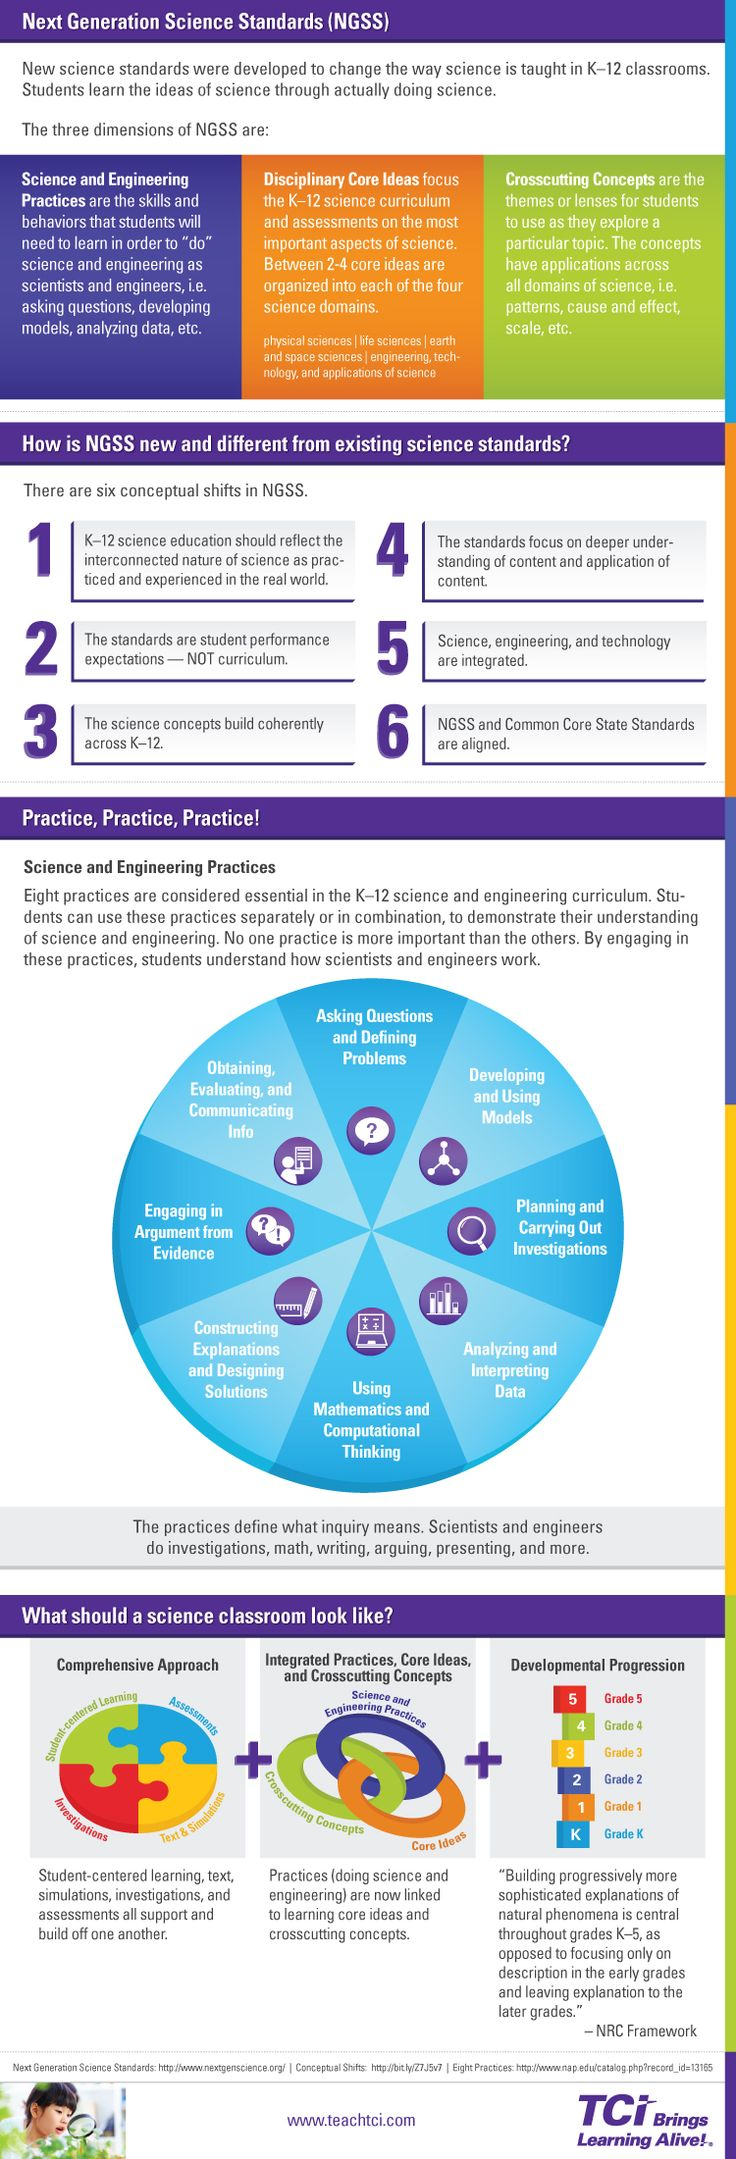 17 Best images about NGSS on Pinterest | Teaching, Lesson plans ...